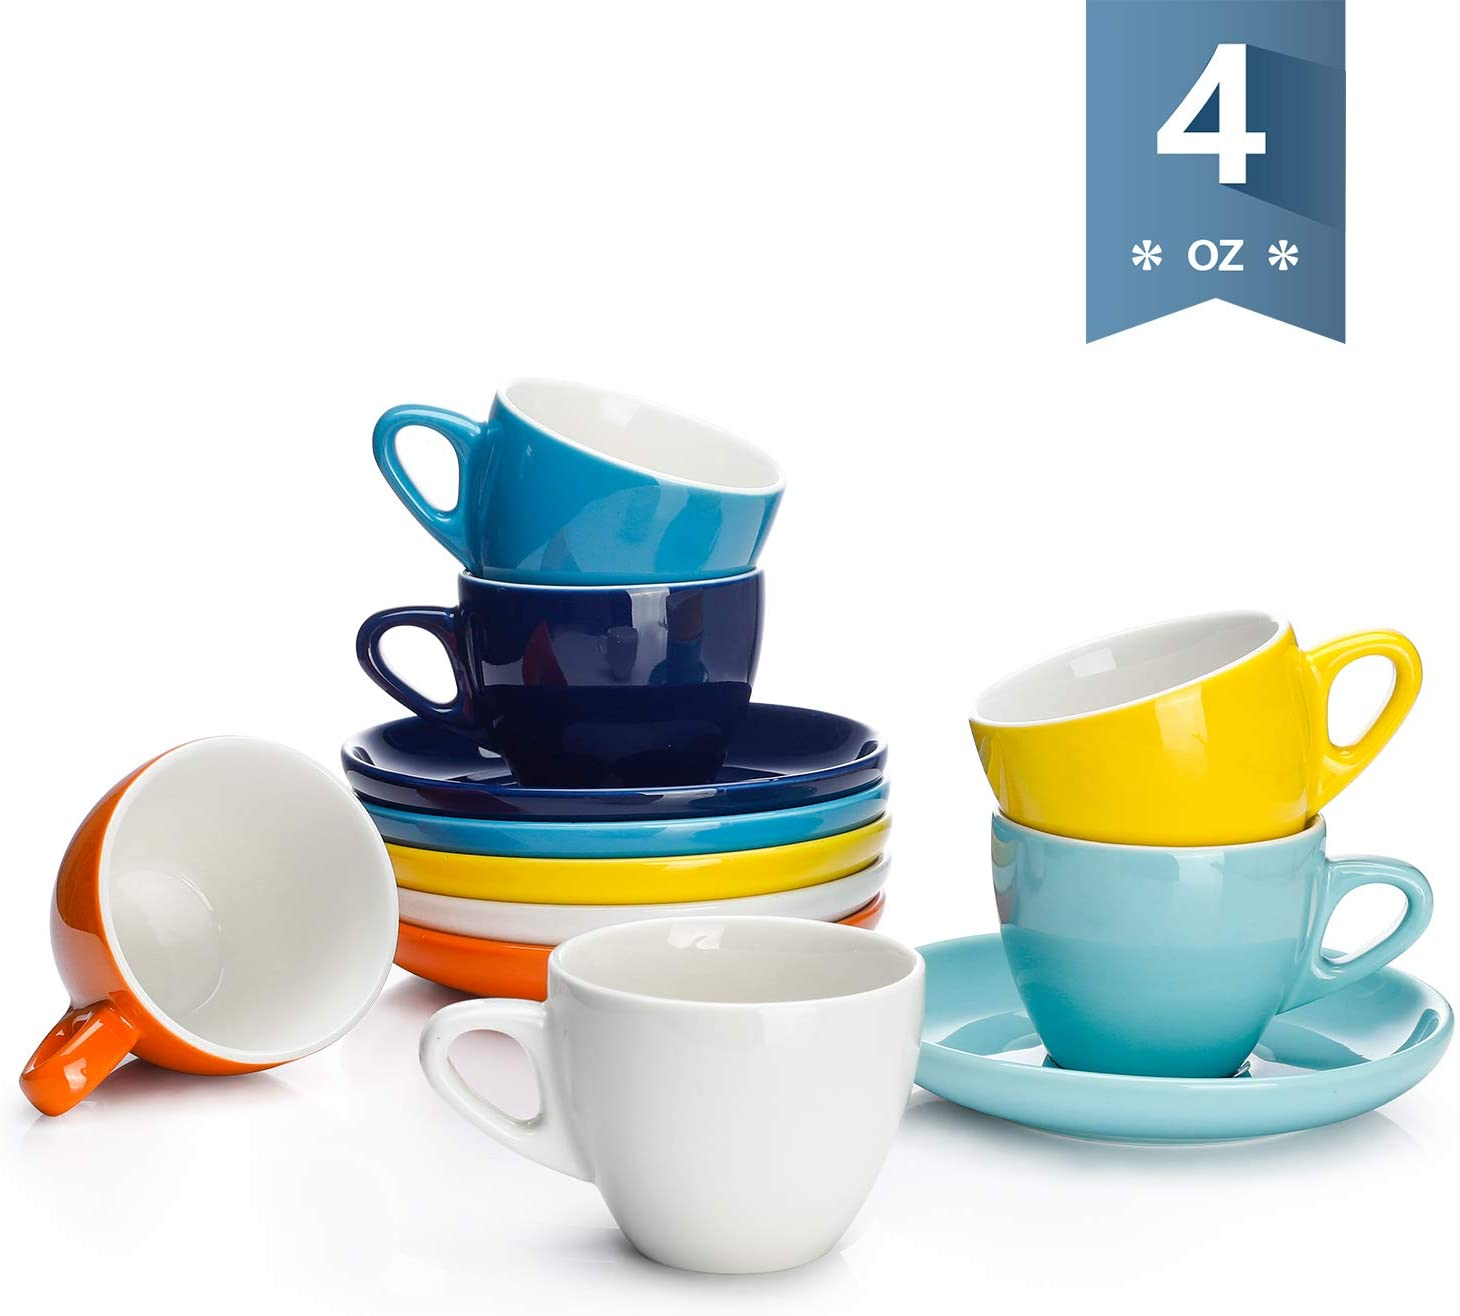 4 oz Demitasse Cups and Saucers